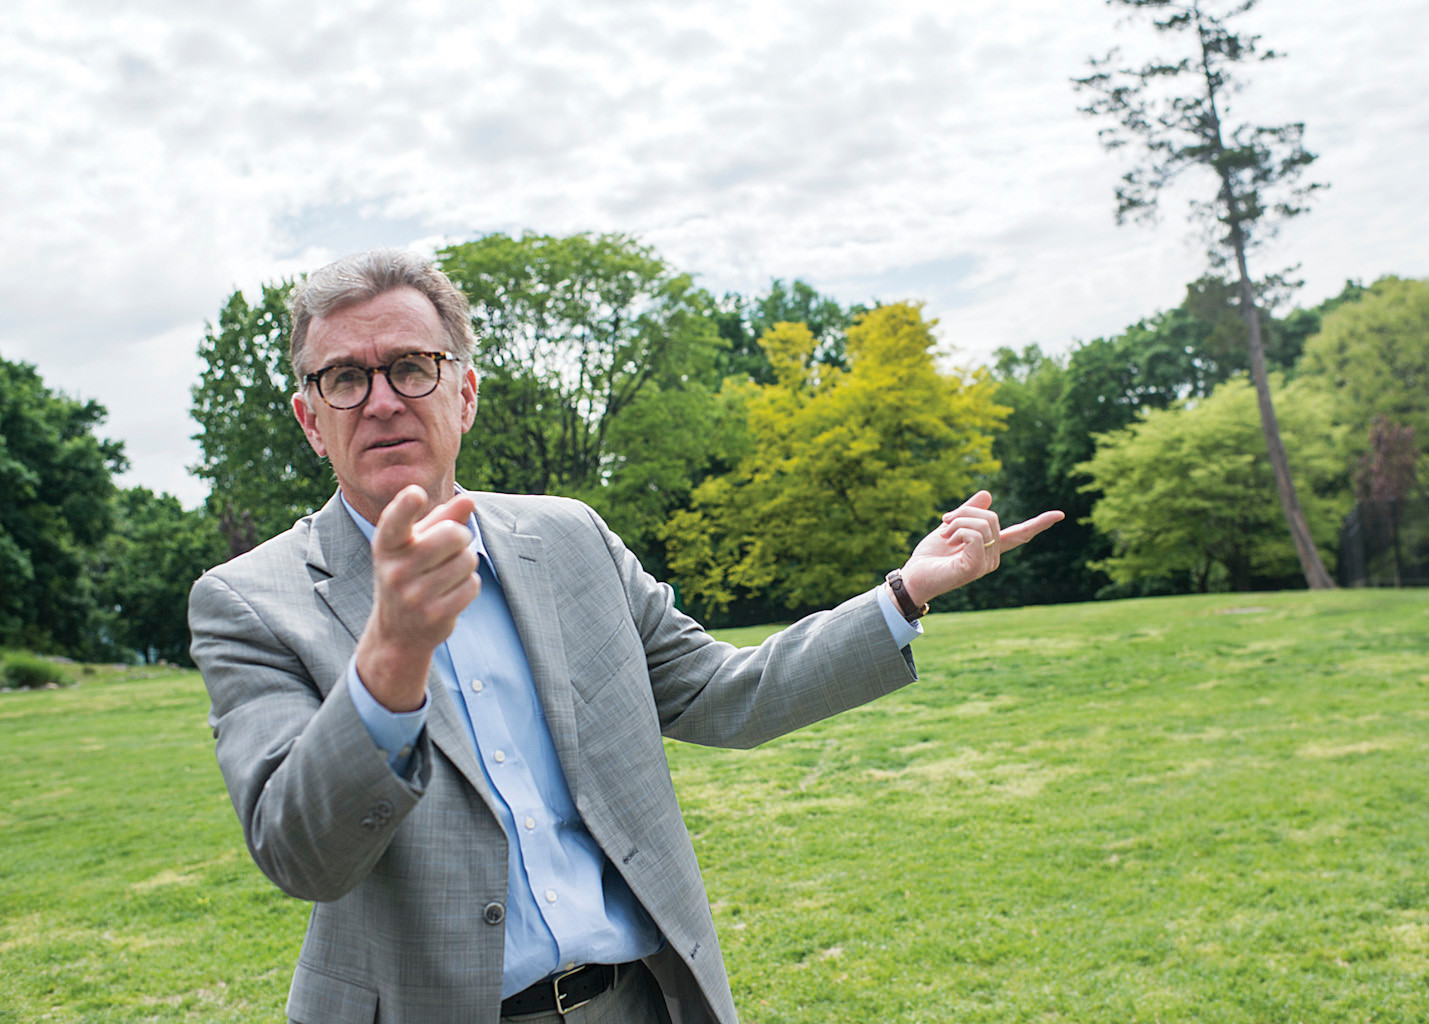 Volunter chairman of the Untermyer Gardens Conservancy, Stephen Byrns, gives a tour of the Walled Gardens.